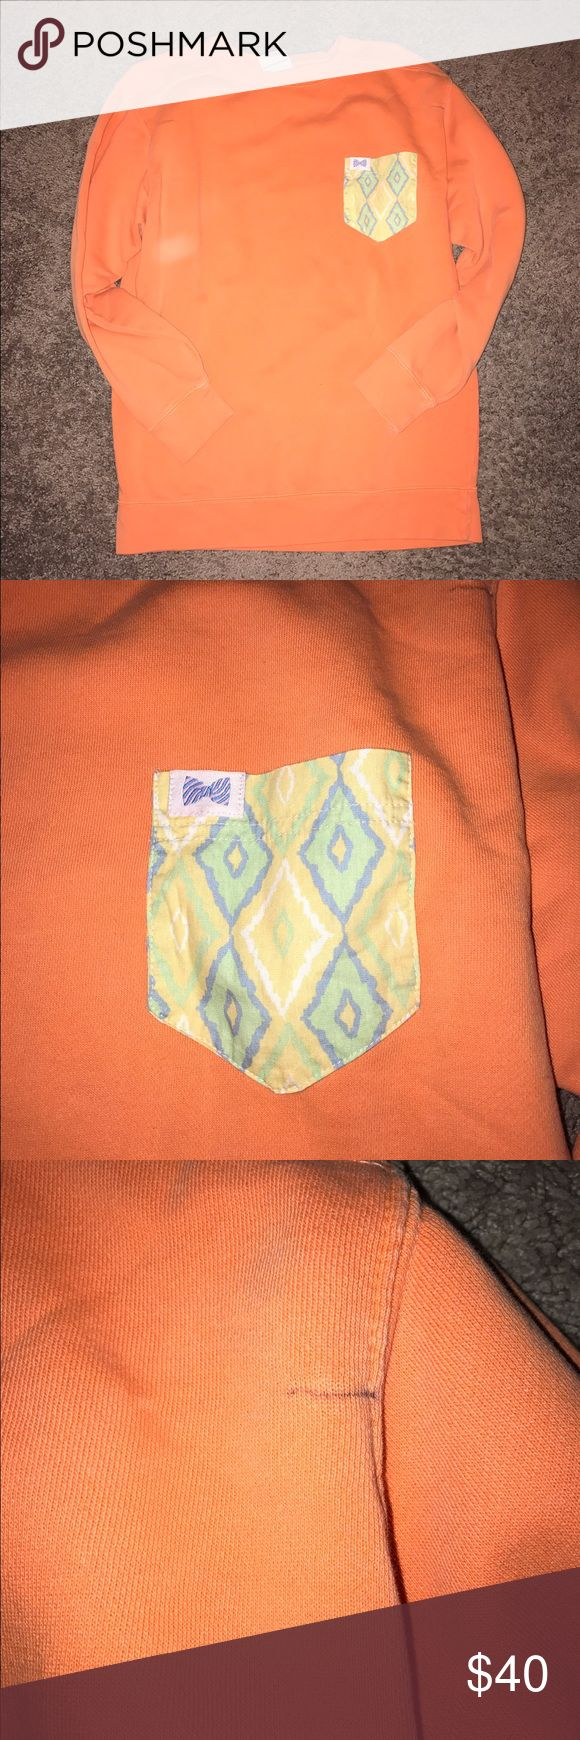 Fraternity Collection pullover Orange pullover Fraternity Collection with yellow, white, blue and green pocket (pastel colors) with the Fraternity Collection bow logo on the pocket (see pictures) *THERE IS A SMALL PEN MARK ON THE TOP LEFT SHOULDER* Please be aware of this if purchased! It's a super cute winter/spring pullover, not too bulky or heavy :) This was only worn a few times, brand new condition besides the small pen mark! Fraternity Collection Sweaters